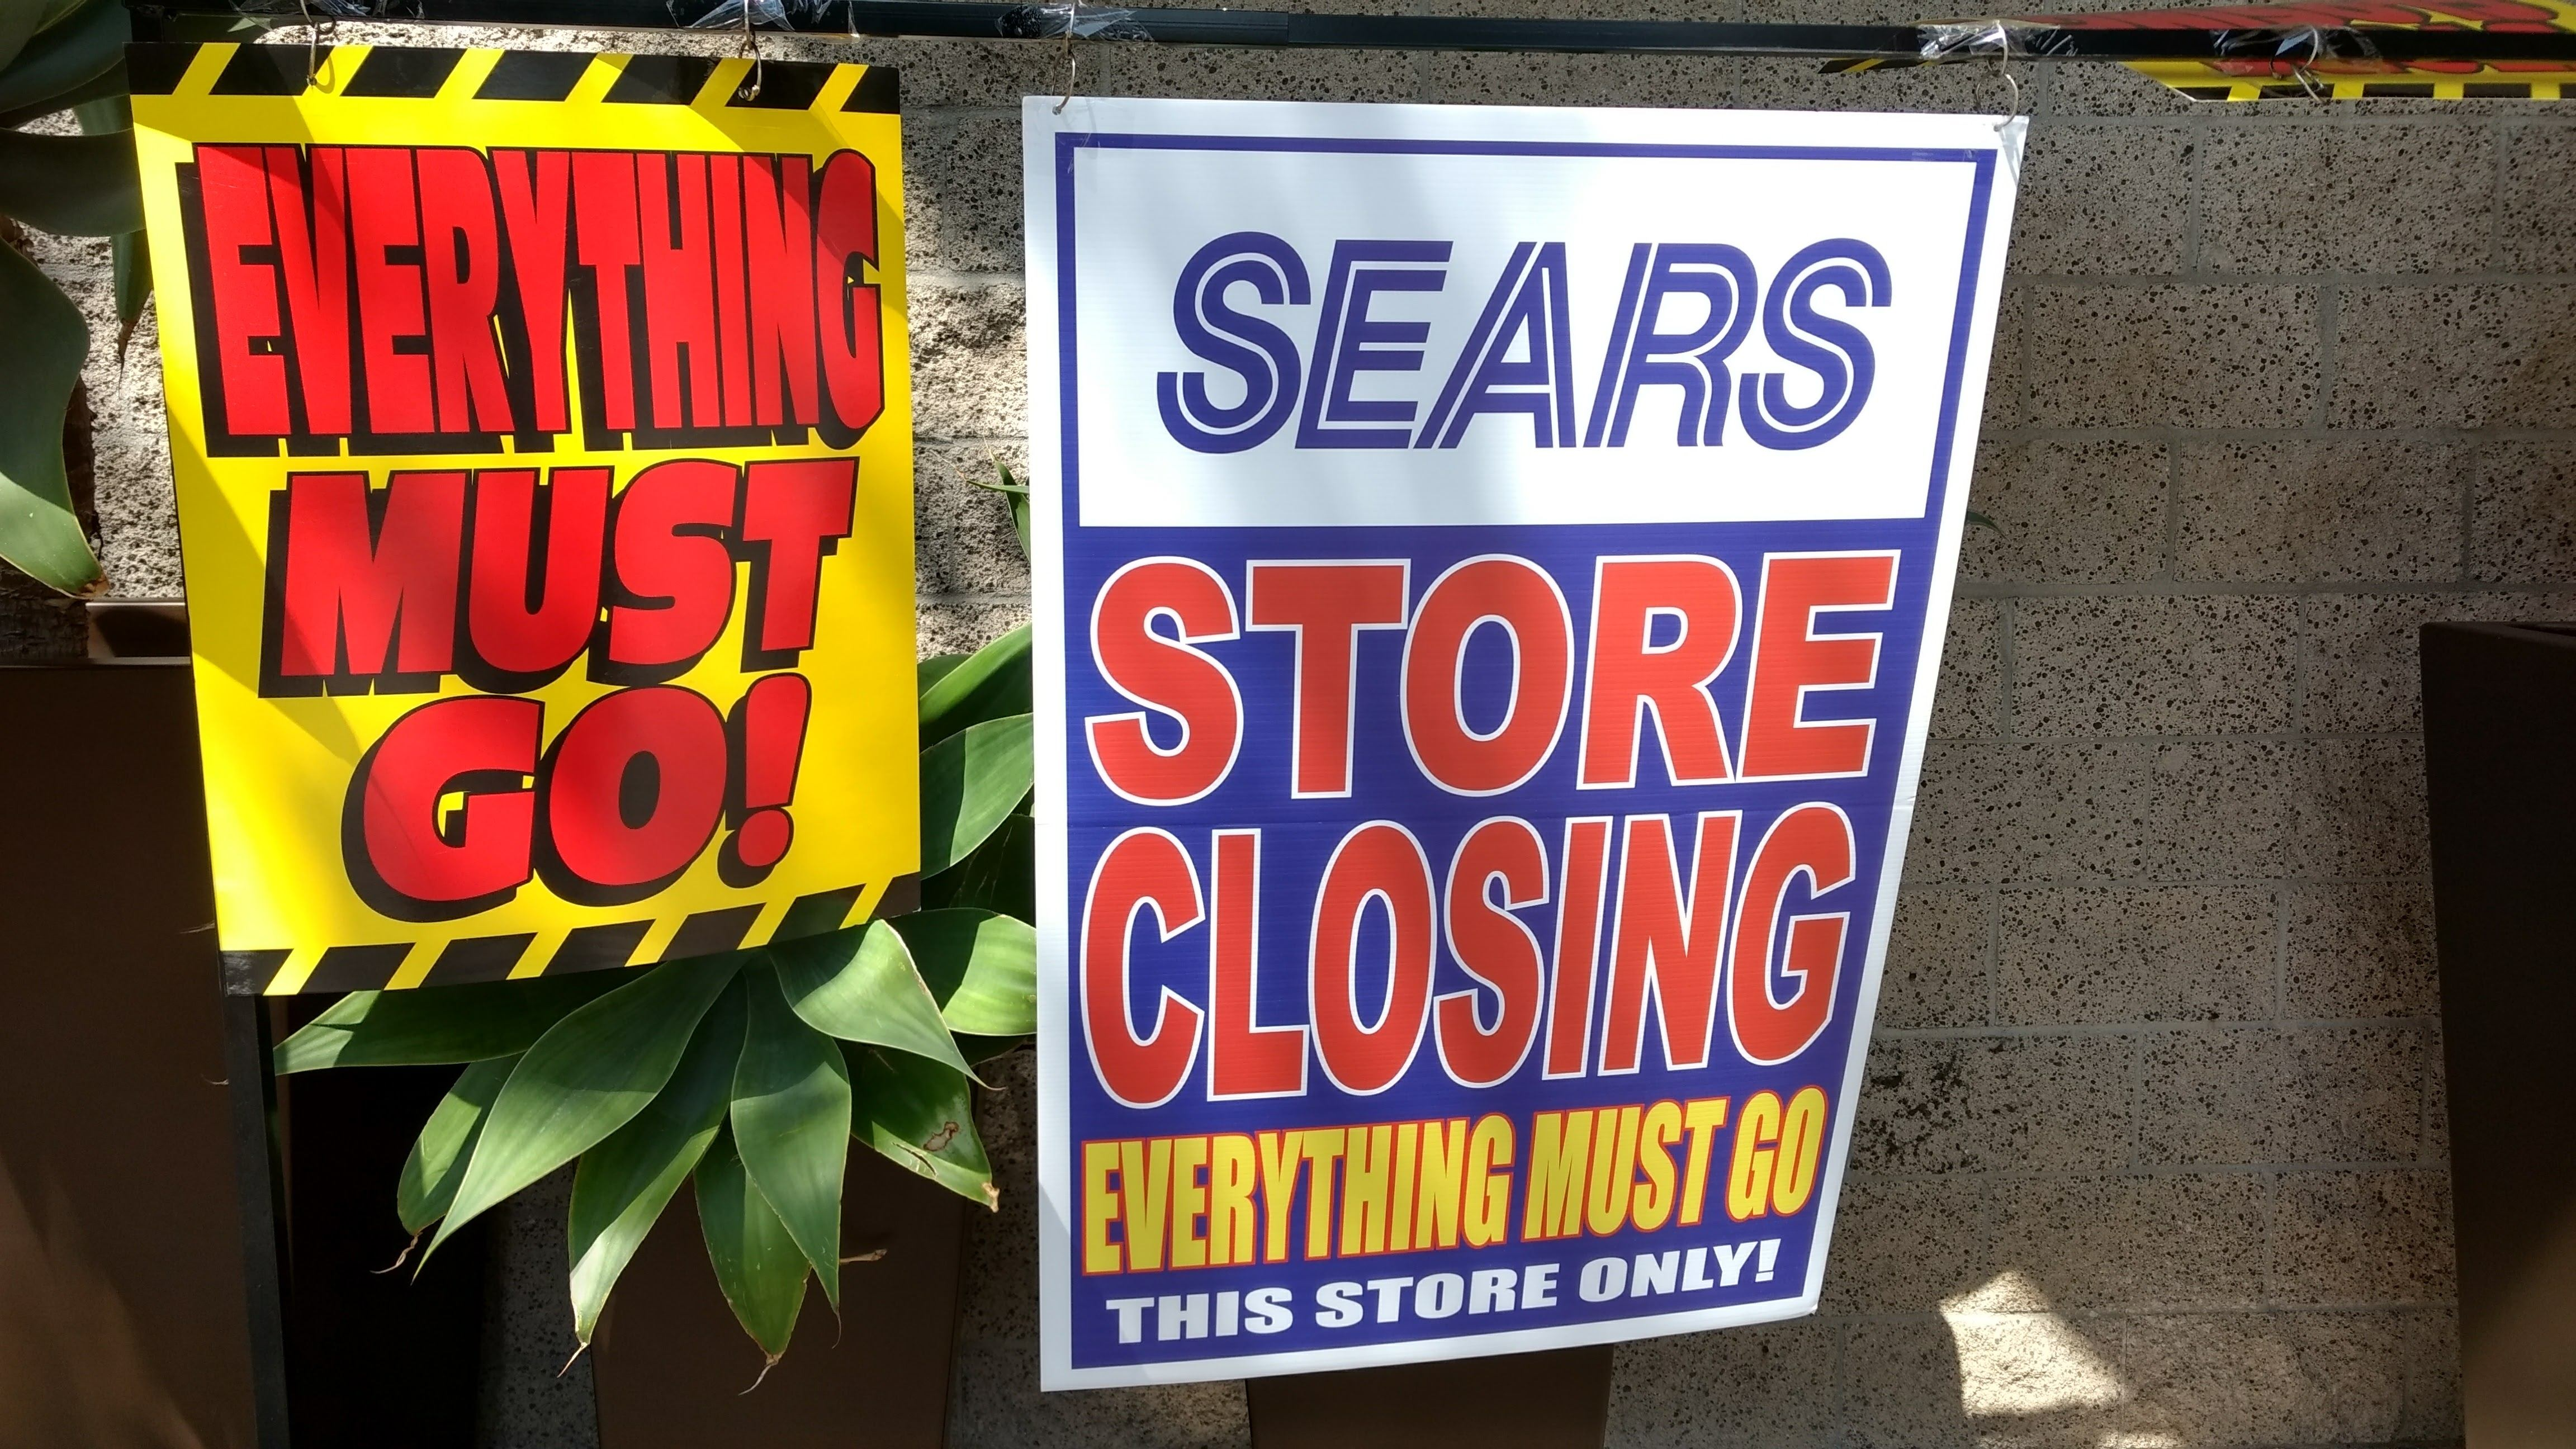 Sears going out of business signs